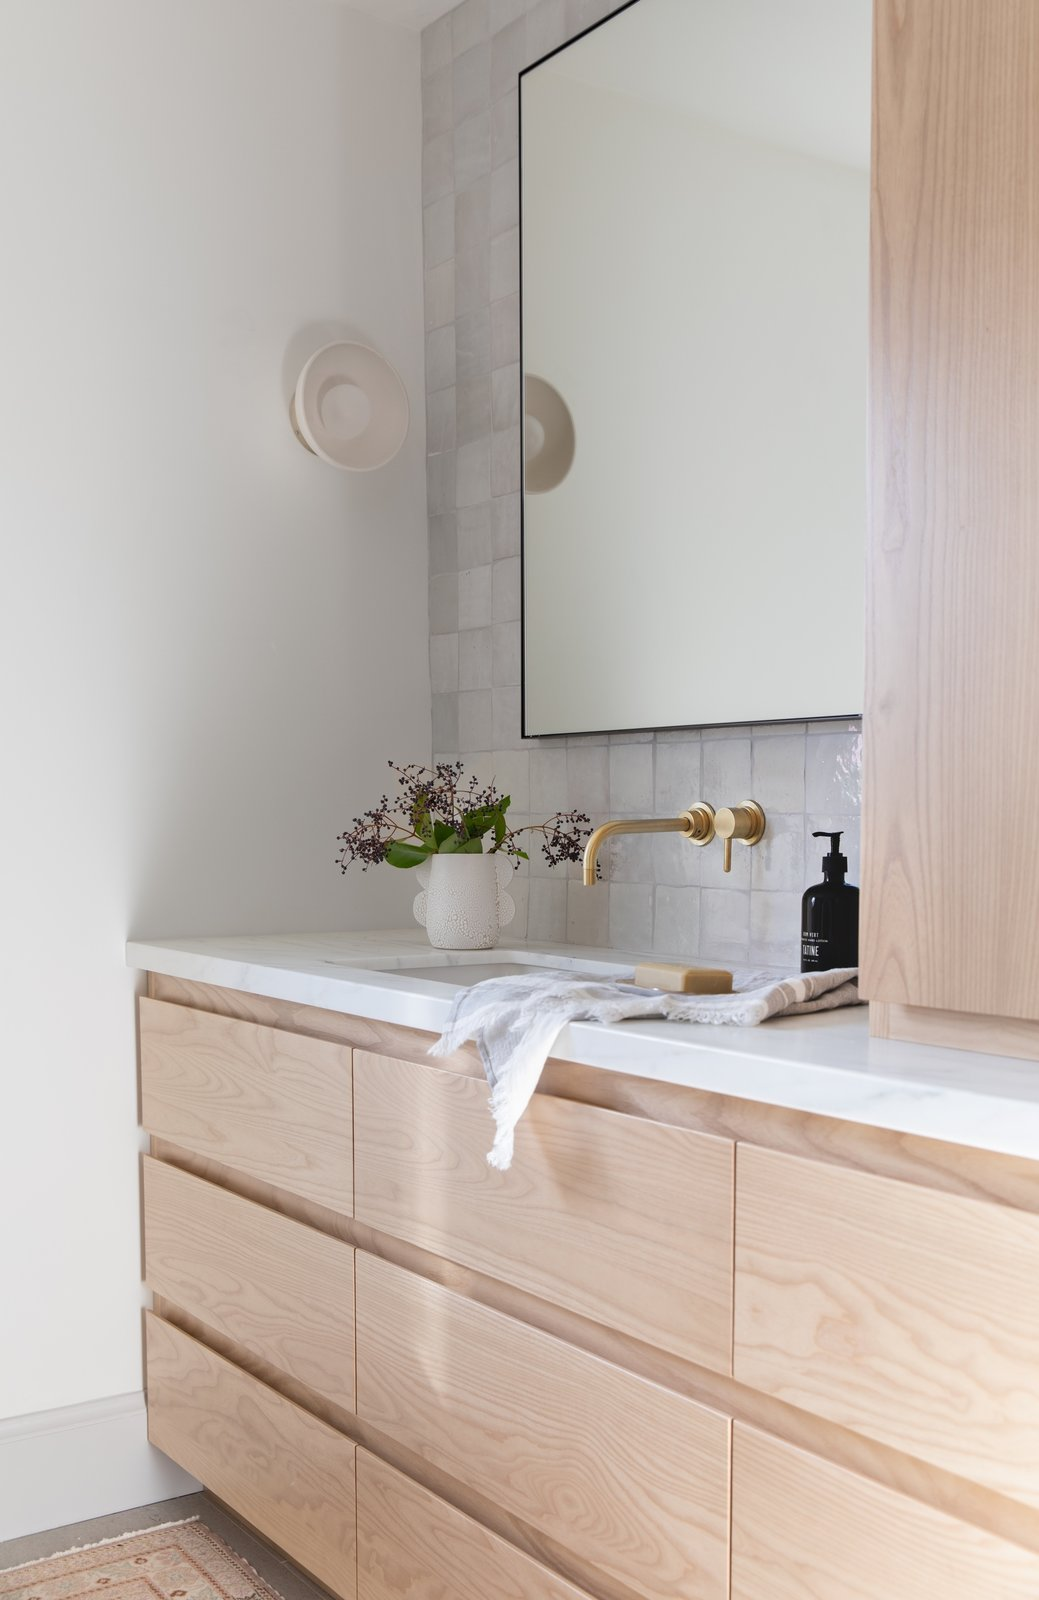 """Wall sconces work well in bathrooms, as the light is closer to your face. """"Overhead lighting can create shadows and uneven illumination, whereas wall sconces can project light outward instead of downward, and close to eye level,"""" says Lauren Nelson, who designed this Los Gatos master bathroom.   Photo 6 of 12 in How Much Should You Spend on a Wall Sconce?"""